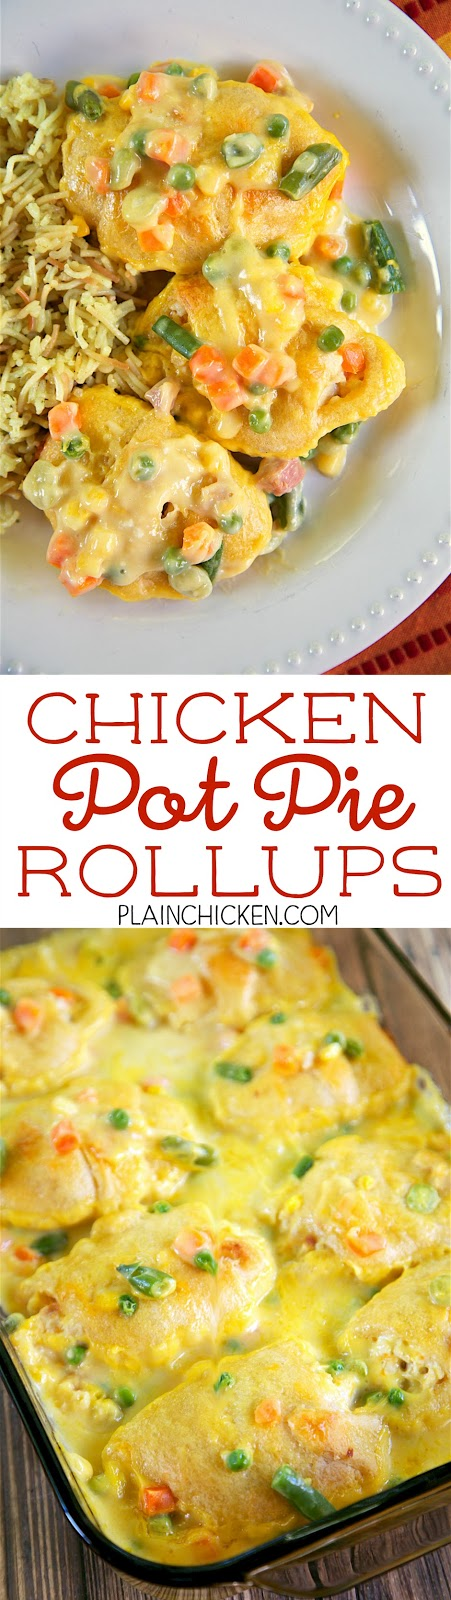 Chicken Pot Pie Rollups - heaven in a pan! SOOO good! EVERYONE loved this casserole. Chicken, cream cheese, cheddar cheese, crescent rolls, cream of chicken soup, milk and frozen mixed vegetables. Ready in 30 minutes!! Great weeknight casserole recipe.